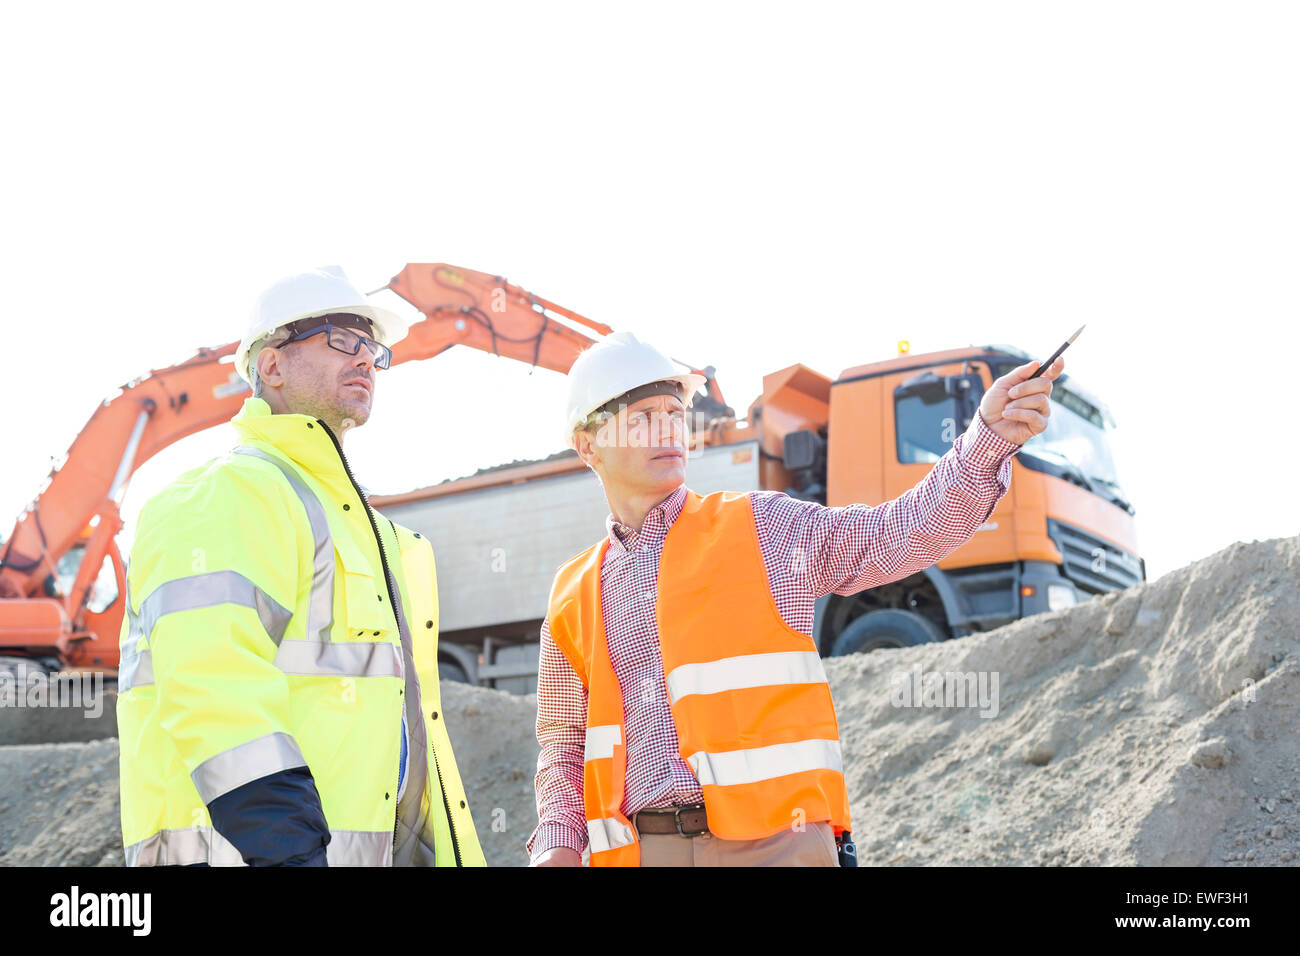 Engineer showing something to colleague while discussing at construction site against clear sky - Stock Image